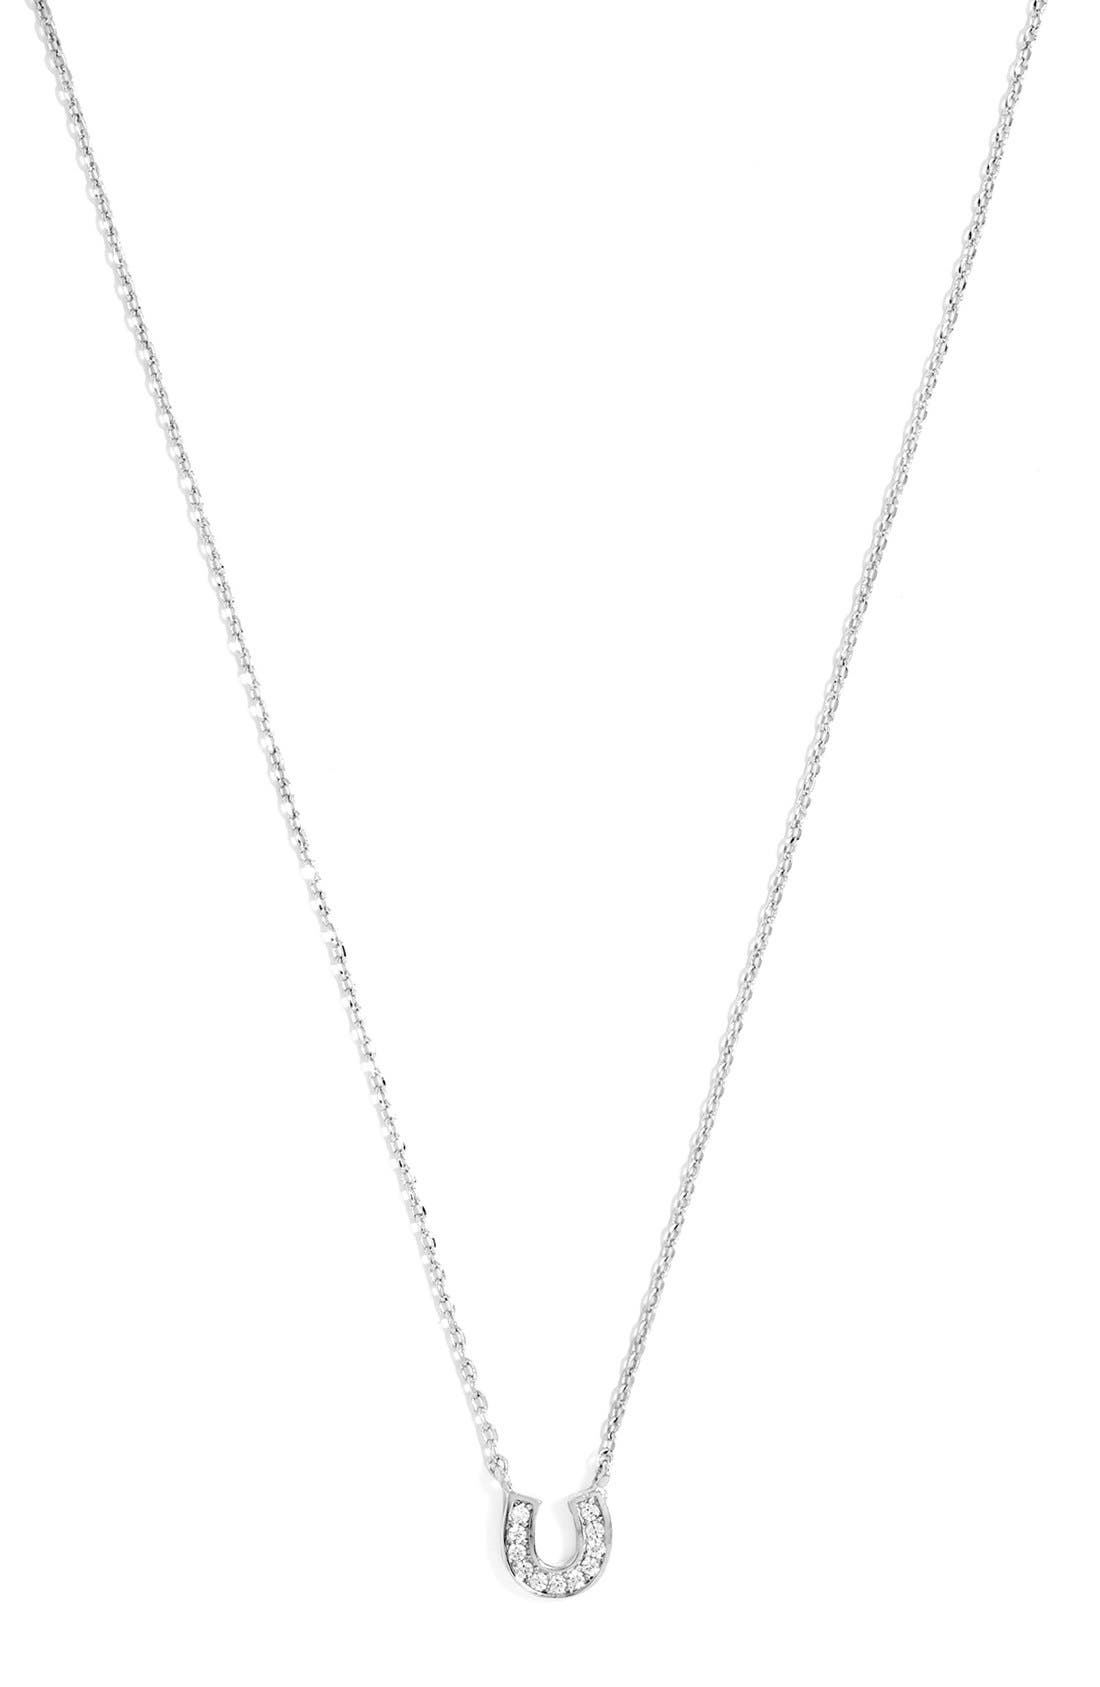 Main Image - BaubleBar 'Ice' Horseshoe Pendant Necklace (Online Only)